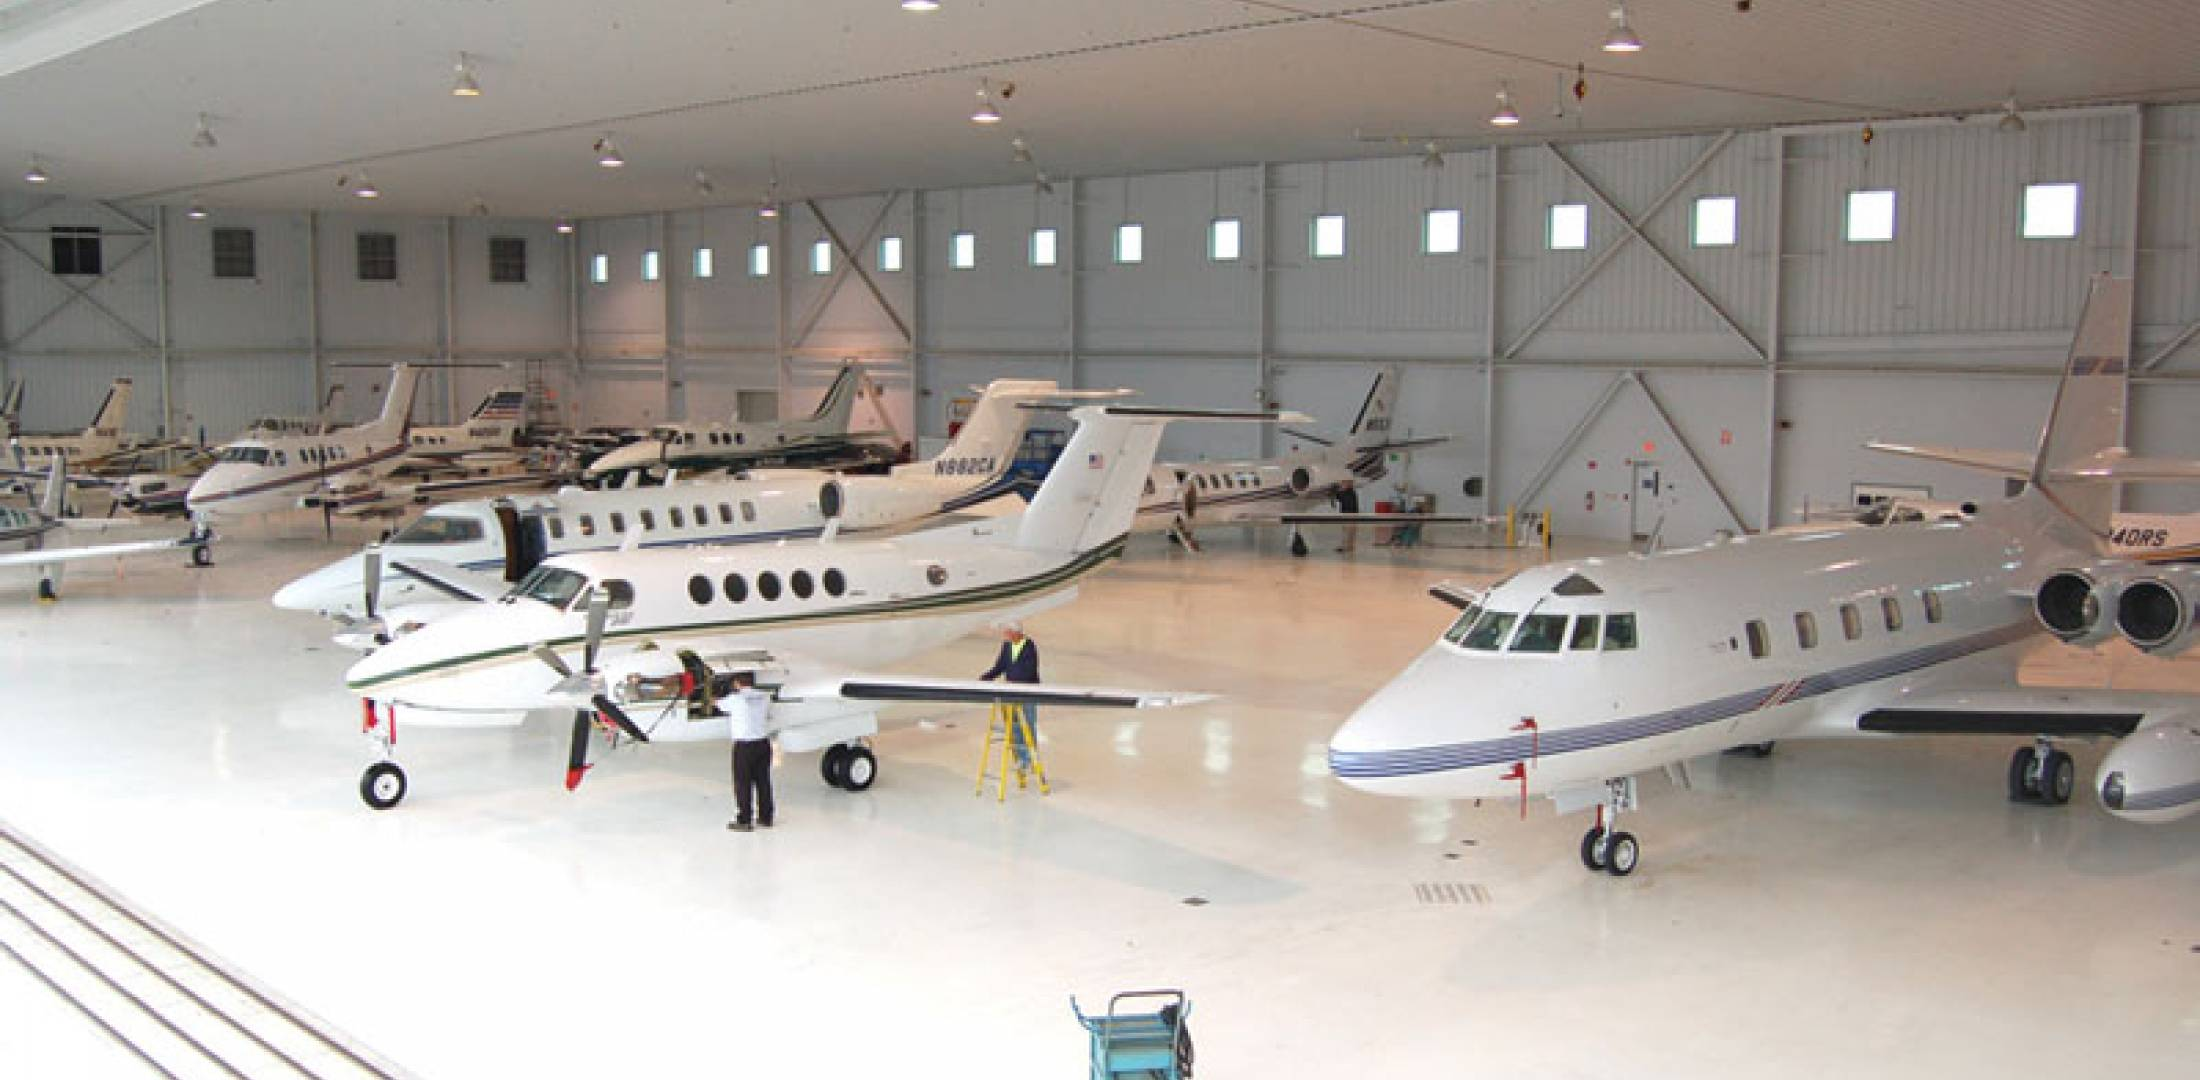 J.A. Air Center provides maintenance for a line of business aircraft, from pisto